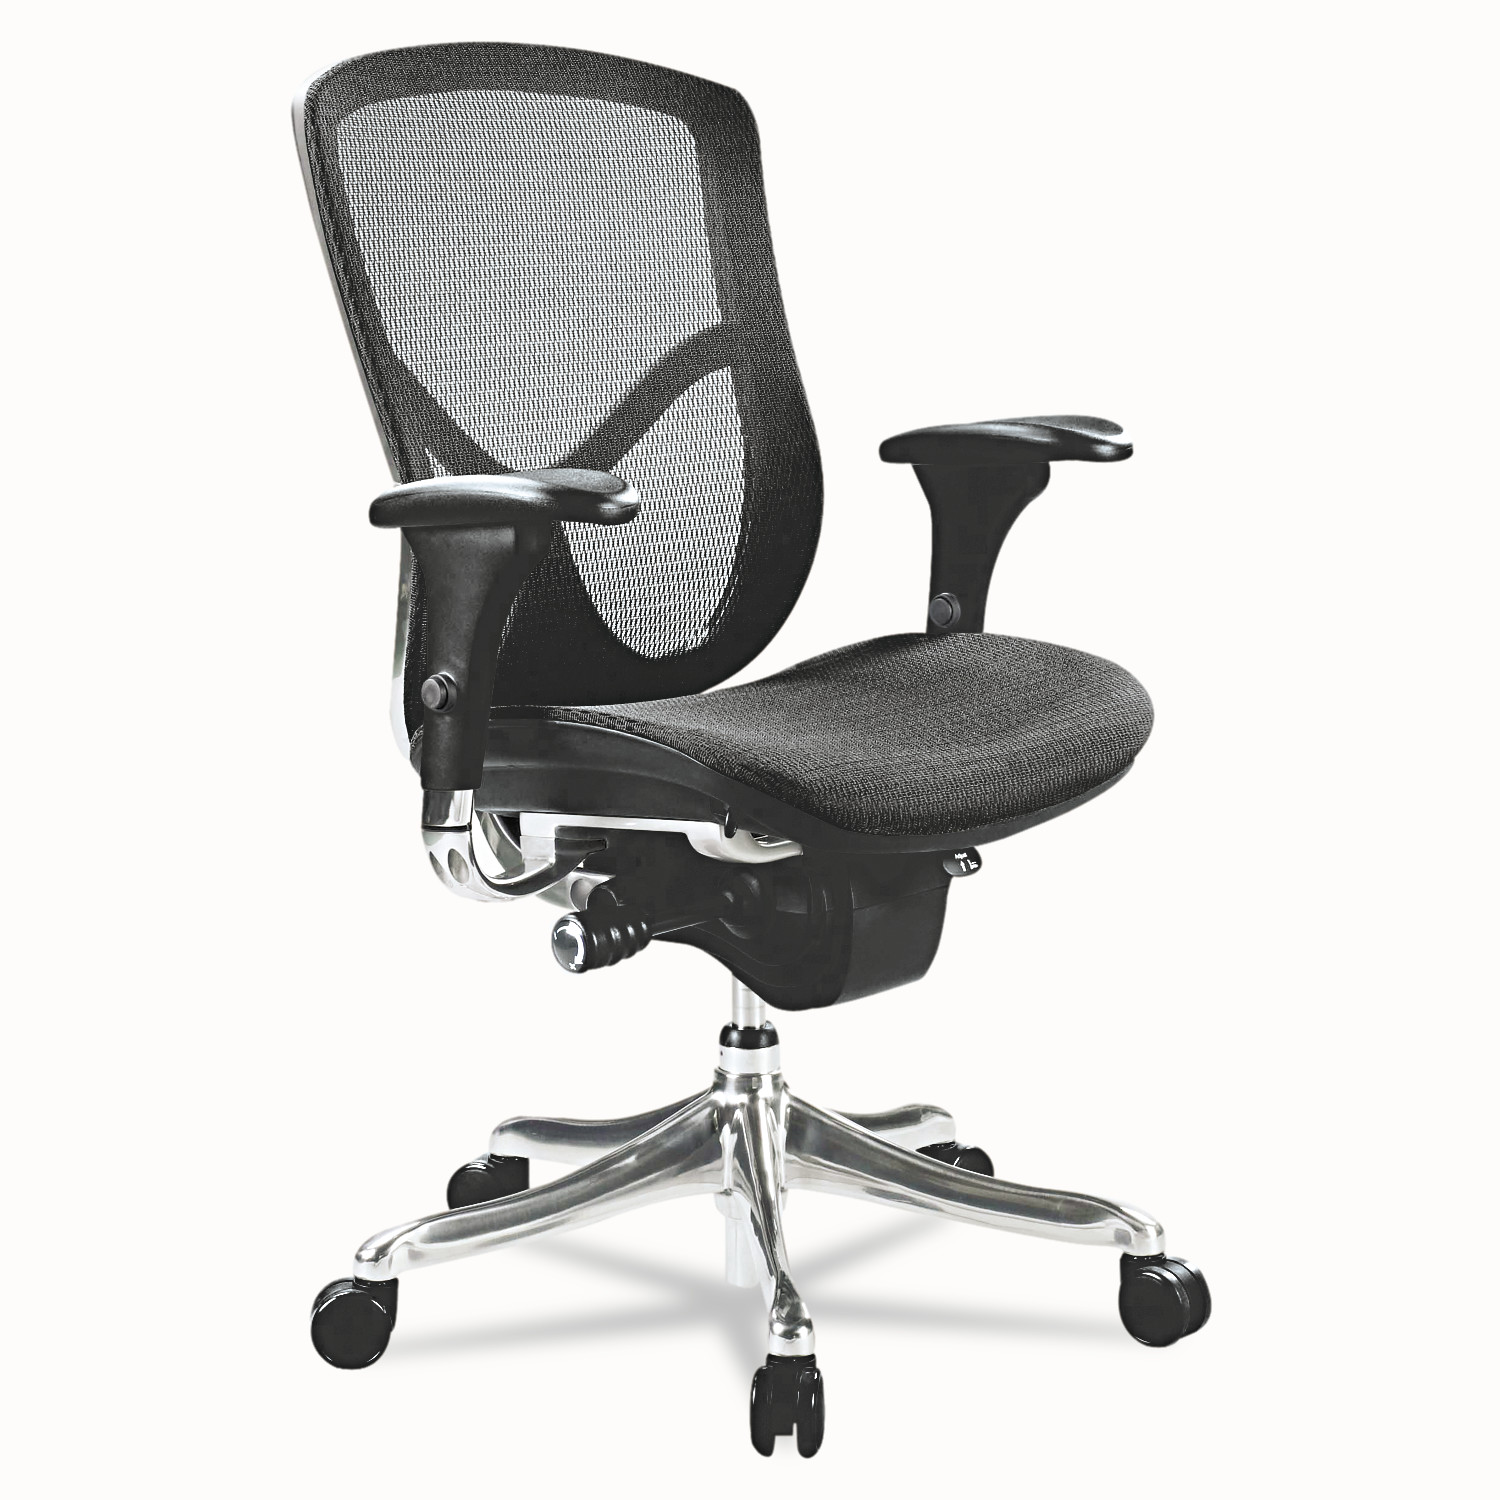 Alera EQ Series Ergonomic Multifunction Mid-Back Mesh Office Chair, Black Base by ALERA